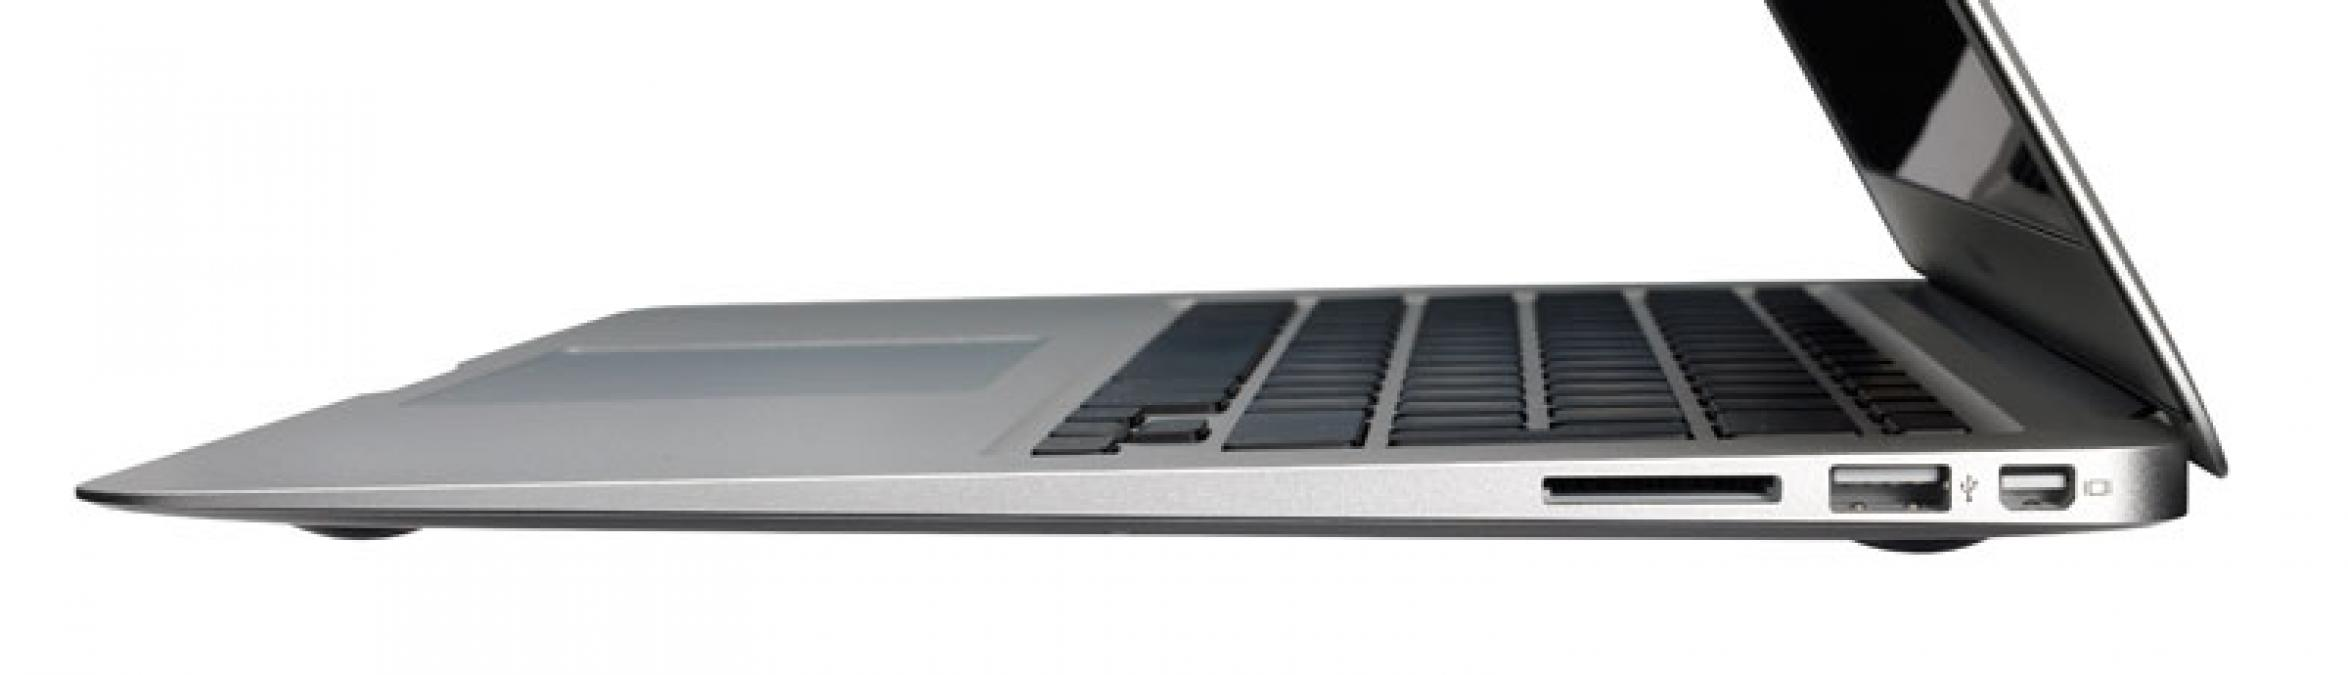 MacBook Air 13in Right side